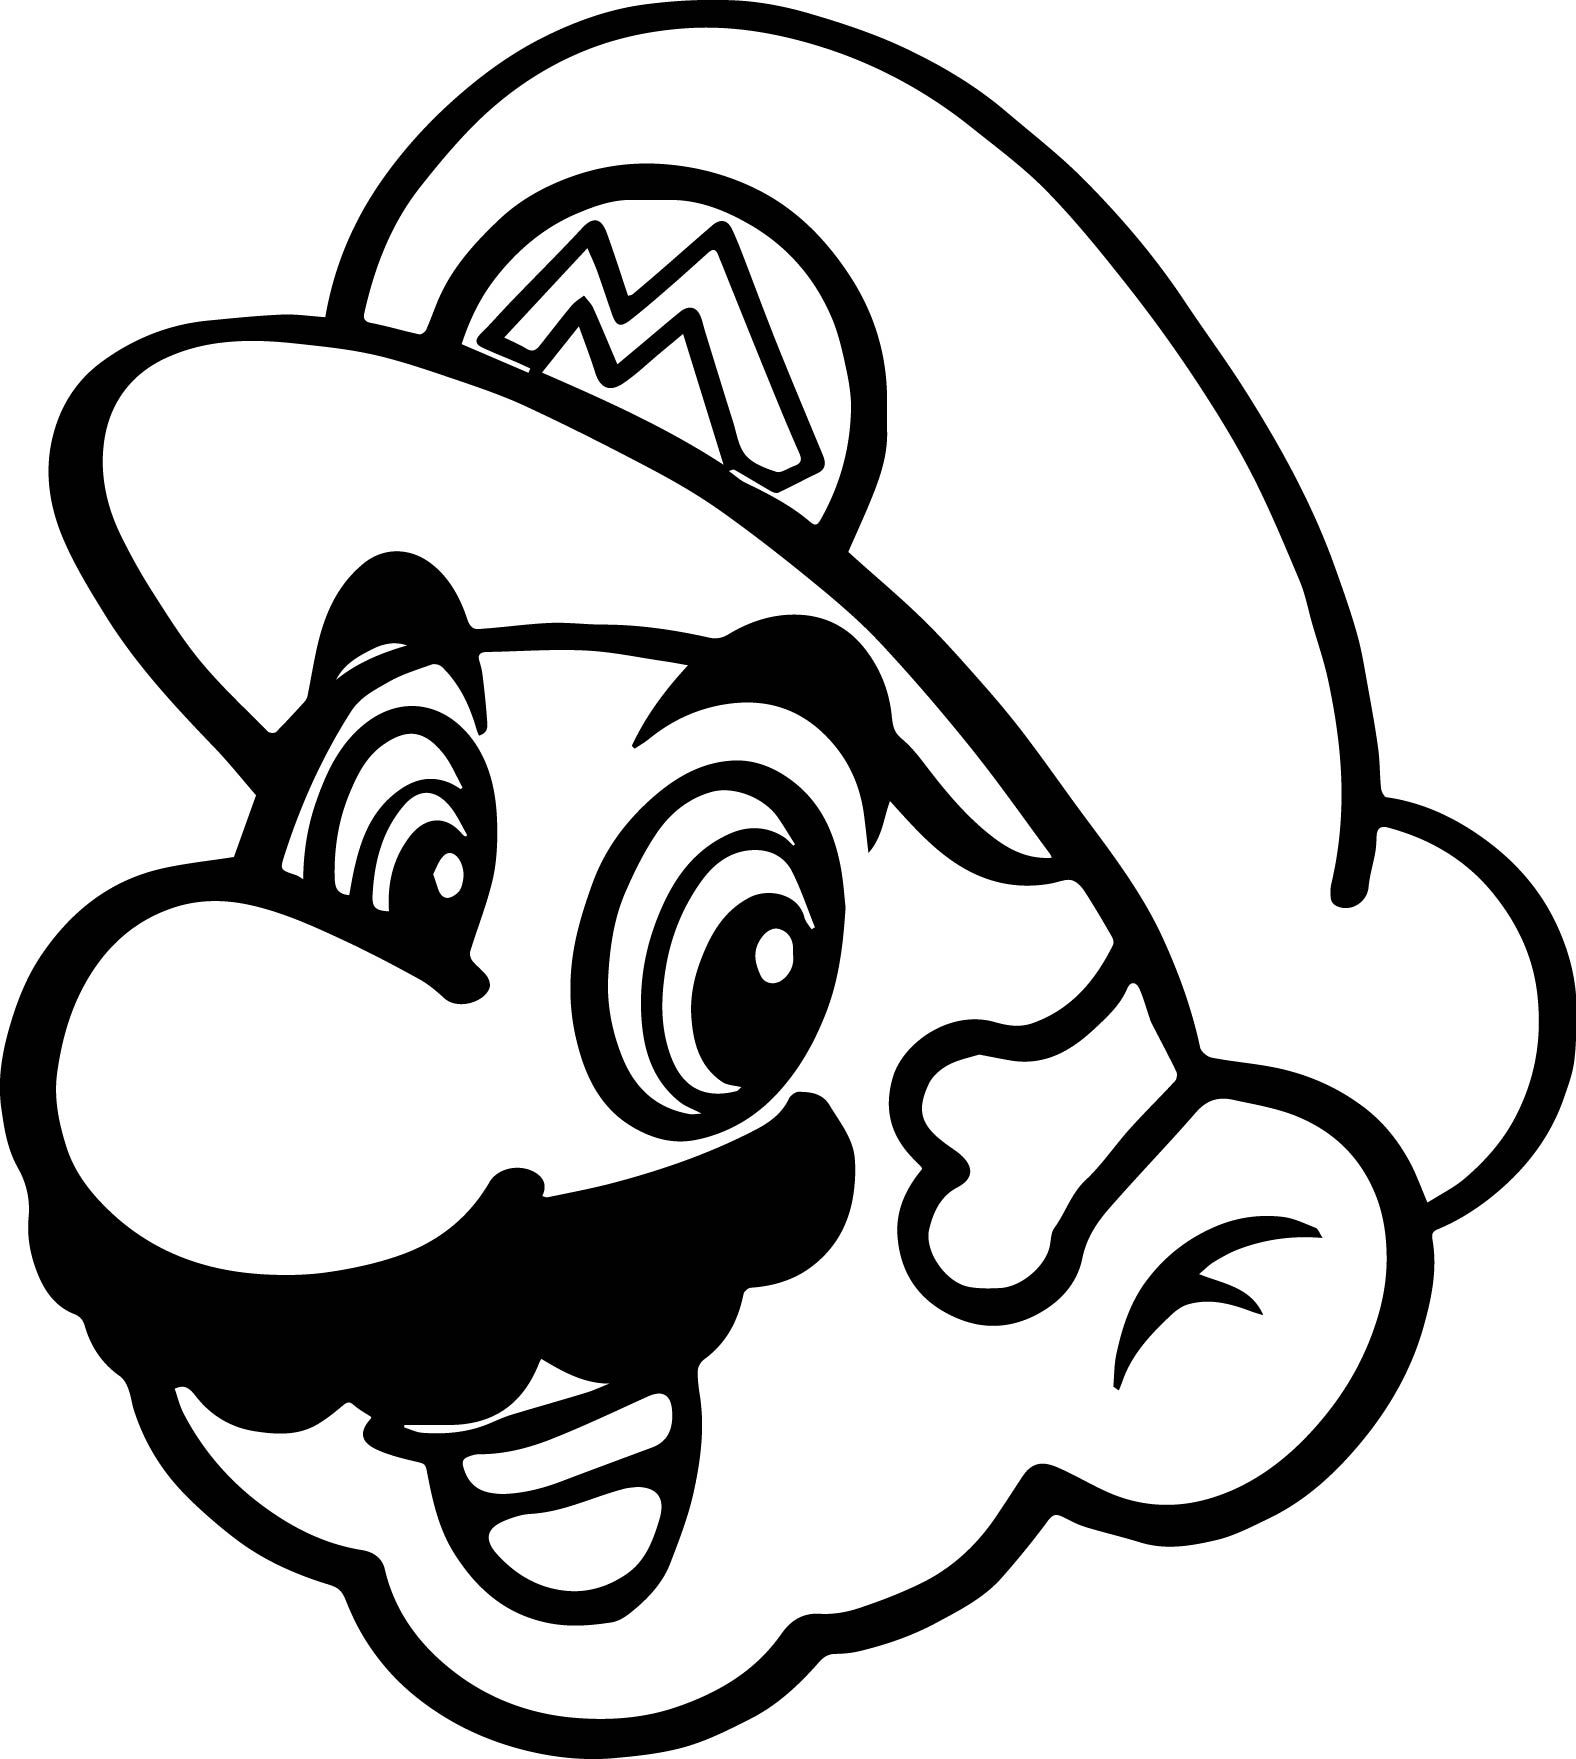 Mario clipart drawing, Mario drawing Transparent FREE for ...